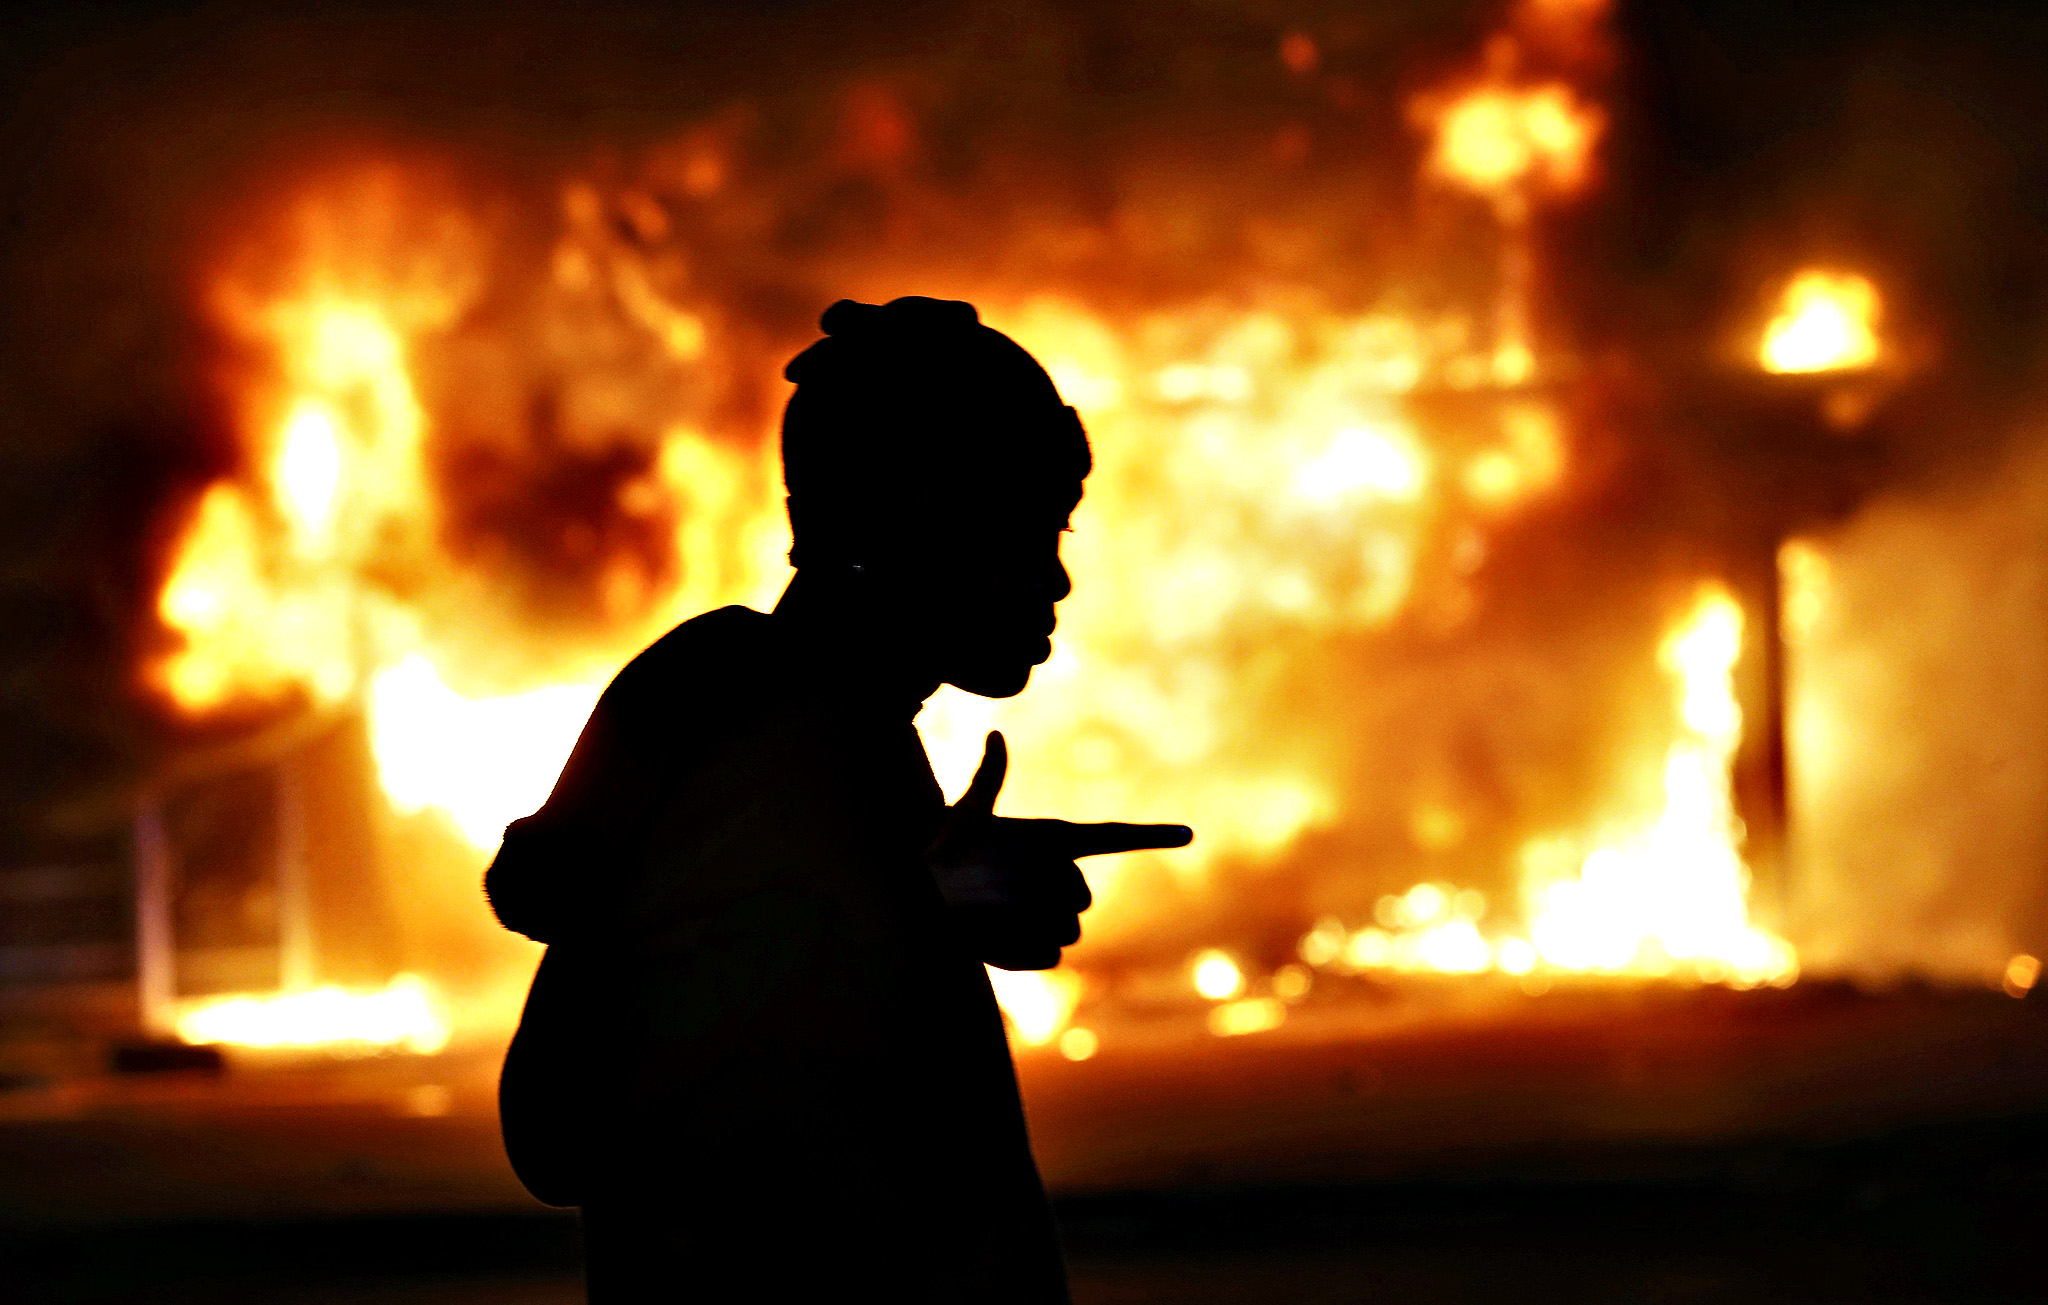 A man walks past a burning building during rioting after a grand jury returned no indictment in the shooting of Michael Brown in Ferguson, Missouri November 24, 2014. Gunshots were heard and bottles were thrown as anger rippled through a crowd outside the Ferguson Police Department in suburban St. Louis after authorities on Monday announced that a grand jury voted not to indict a white officer in the August shooting death of an unarmed black teen.